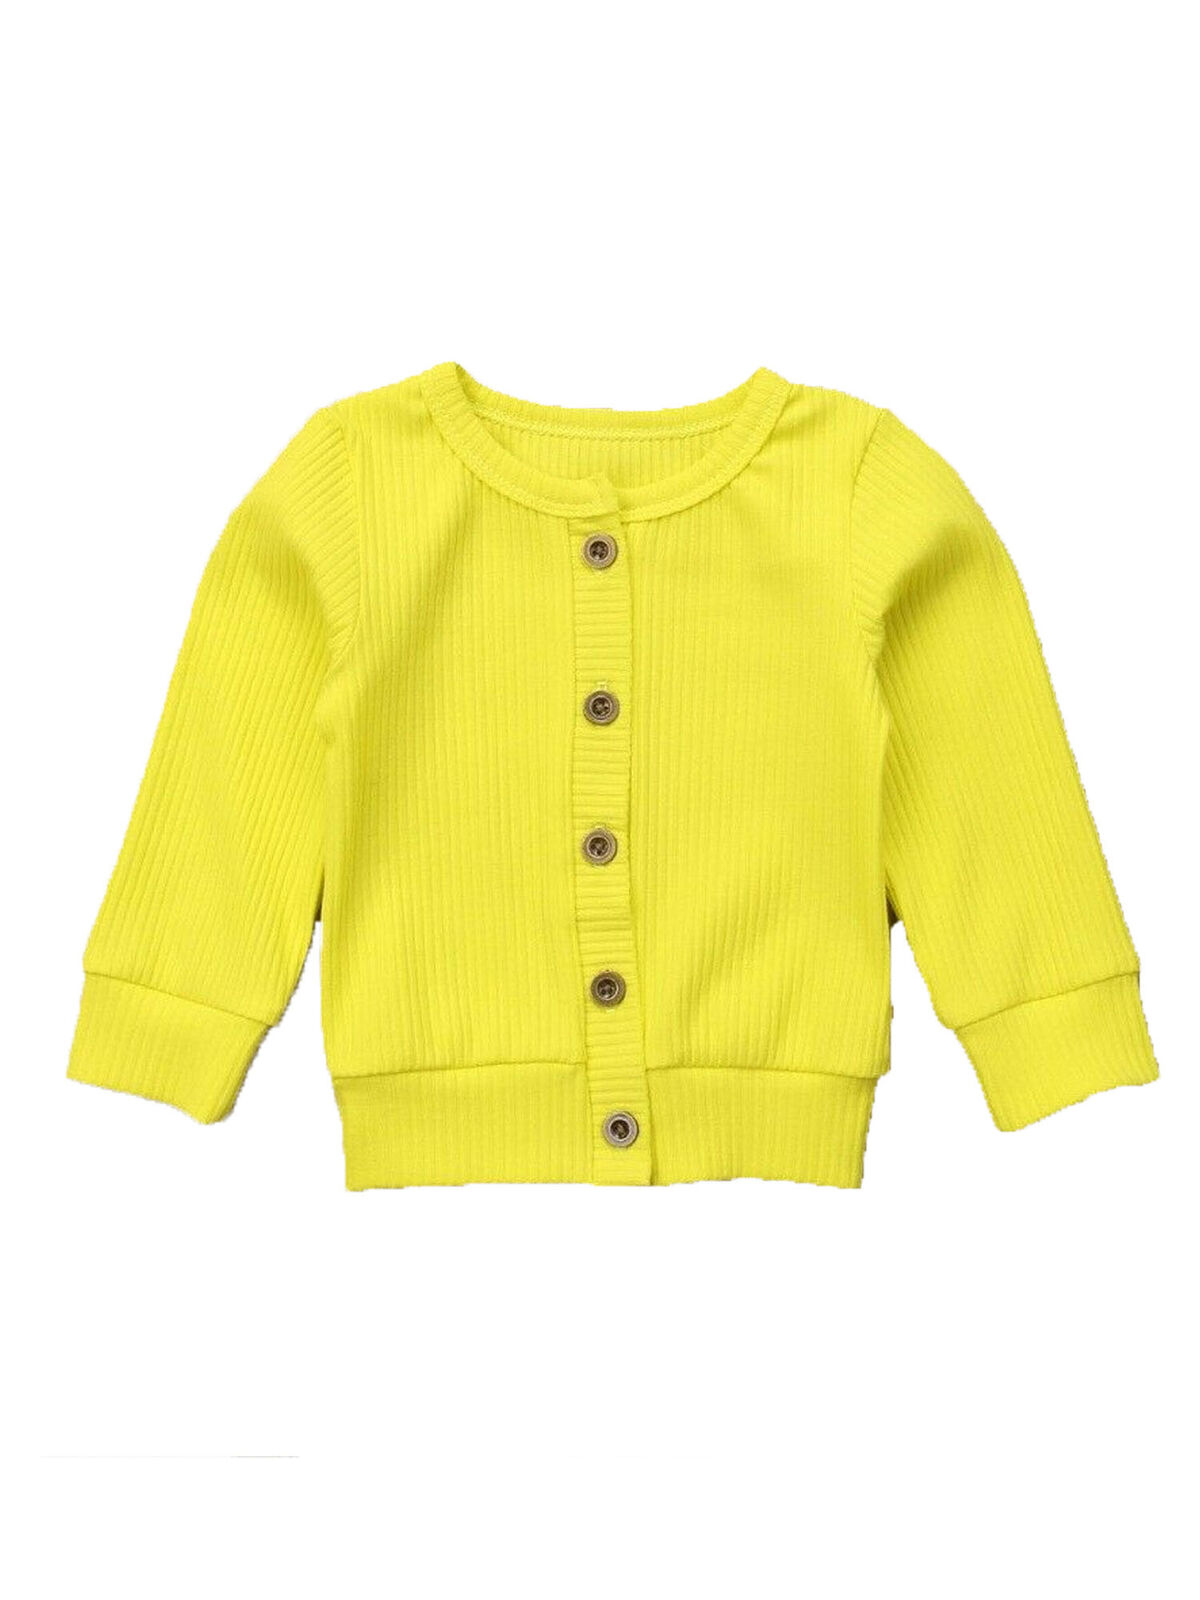 Jumpp Baby Toddler Boys Girls Pullover Sweaters Warm Kint Long Sleeve Tops Sweatshirt Winter Clothes for Infant